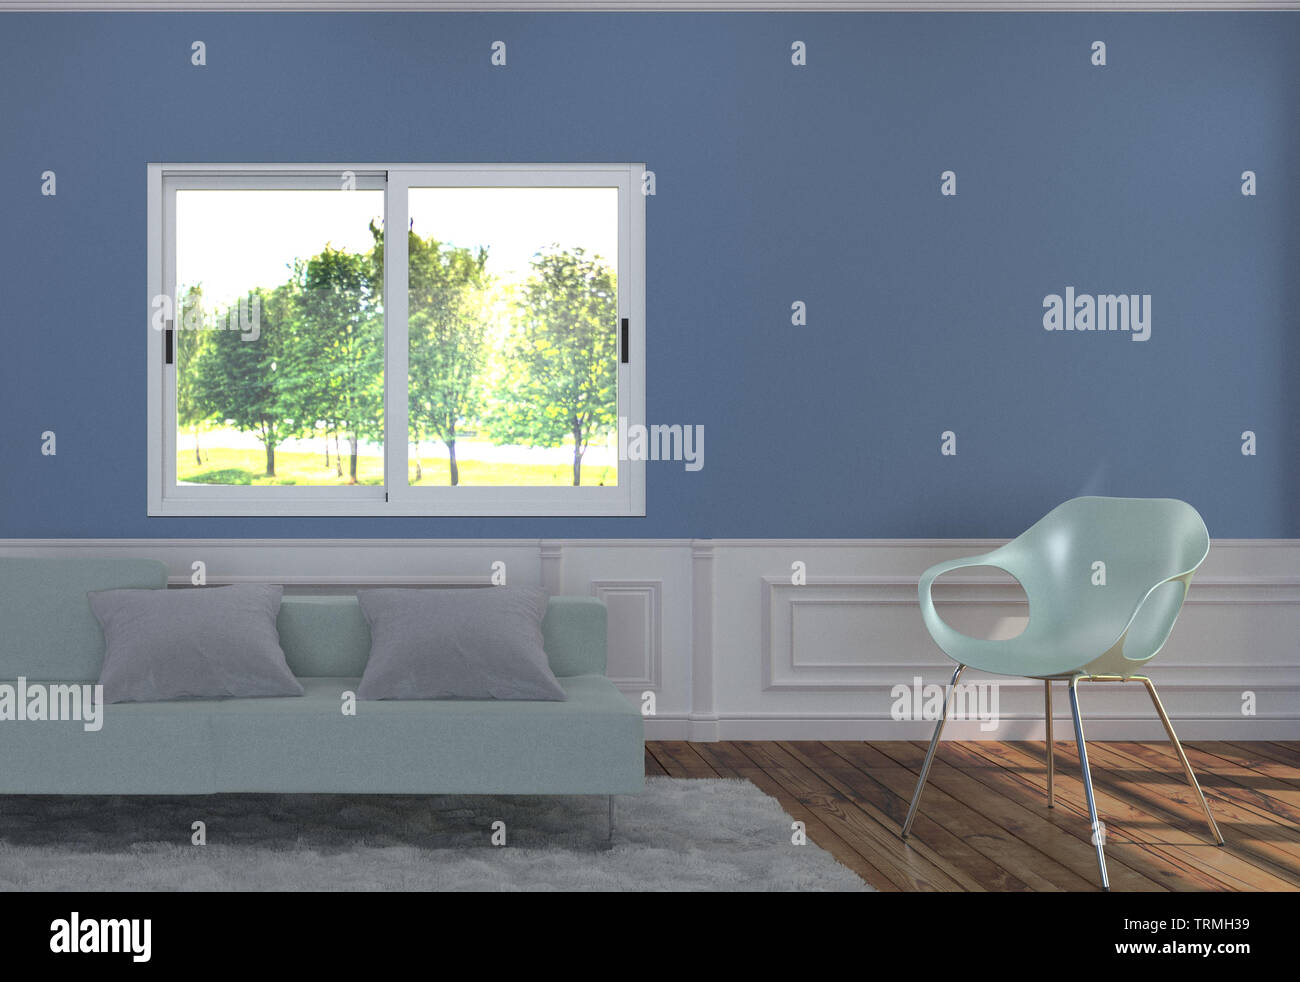 Groovy Living Room Interior With Light Blue Sofa And Two Pillows Beatyapartments Chair Design Images Beatyapartmentscom